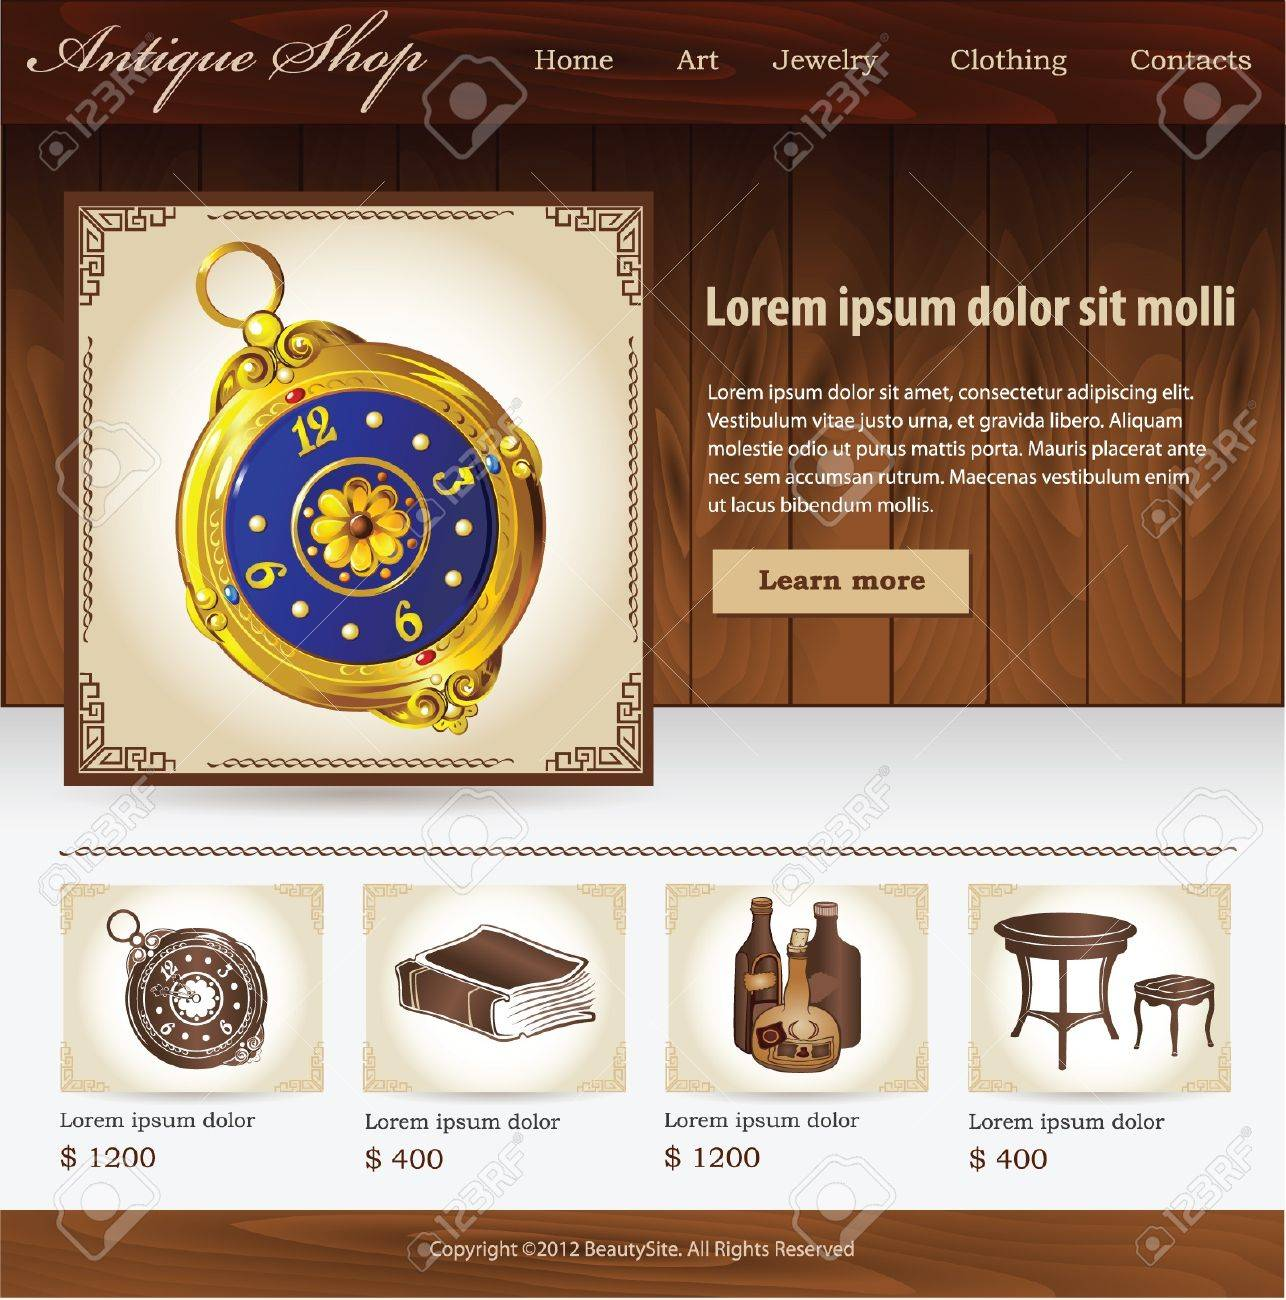 Design template for Antique shop website Stock Vector - 19534682